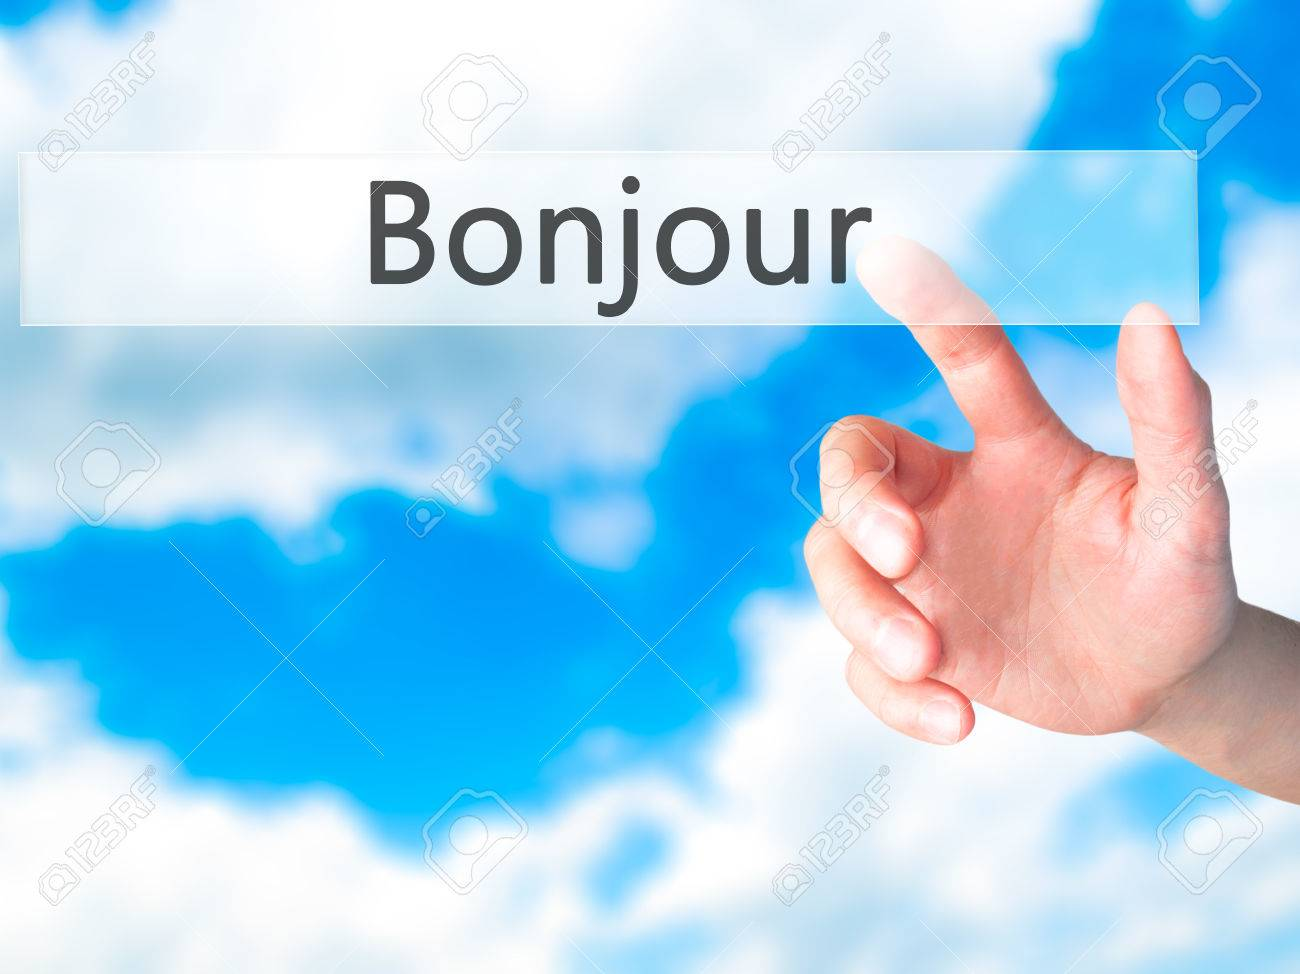 Bonjour Good Morning In French Hand Pressing A Button On Stock